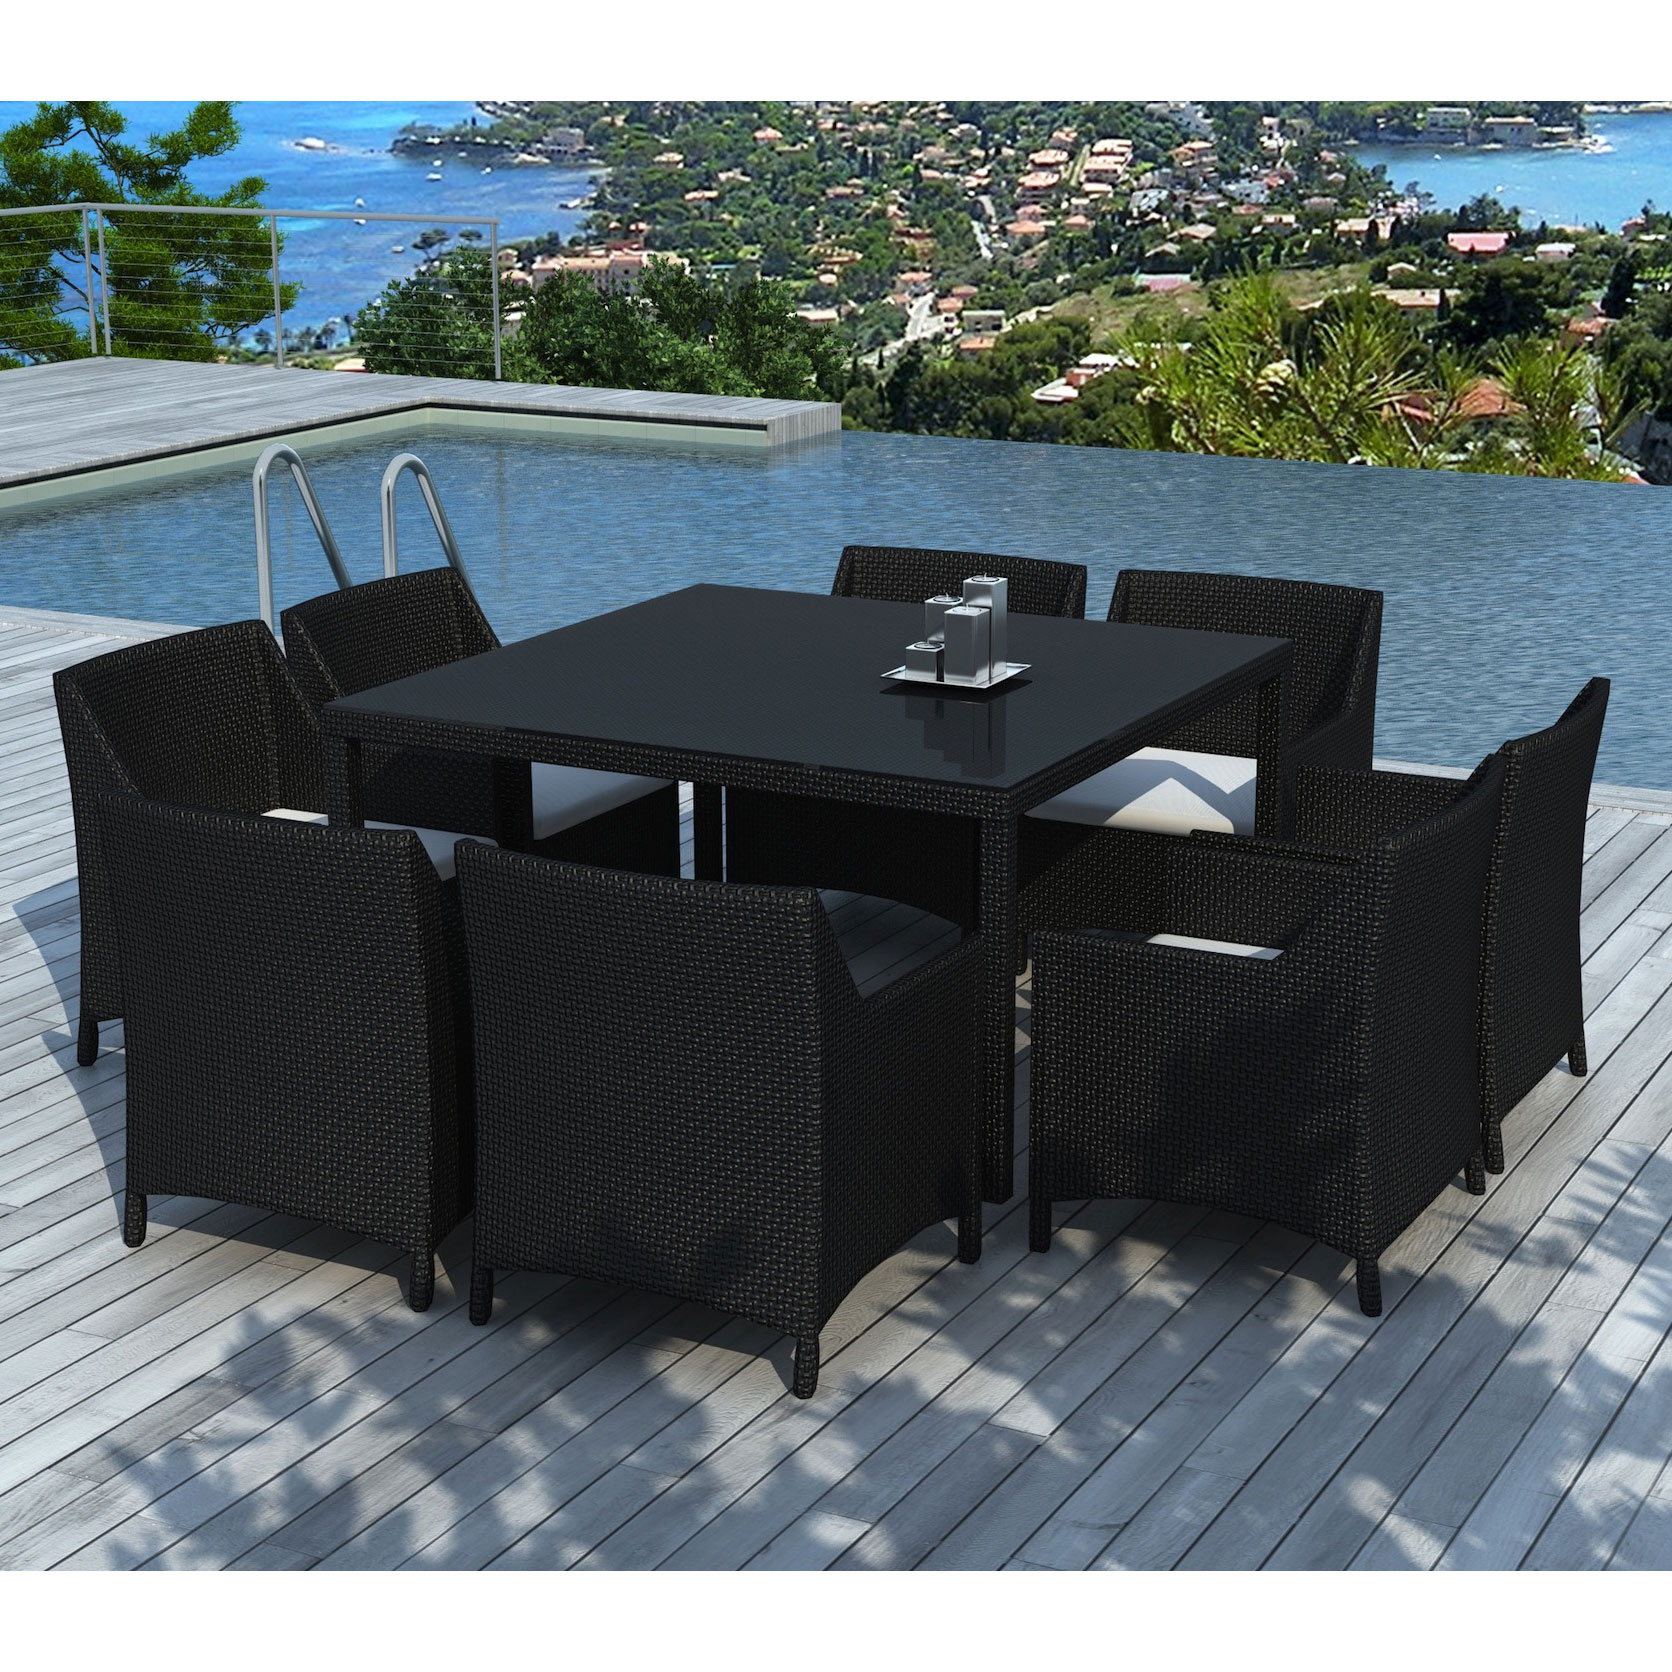 table de jardin en r sine tress e avec 8 fauteuils comparer avec. Black Bedroom Furniture Sets. Home Design Ideas